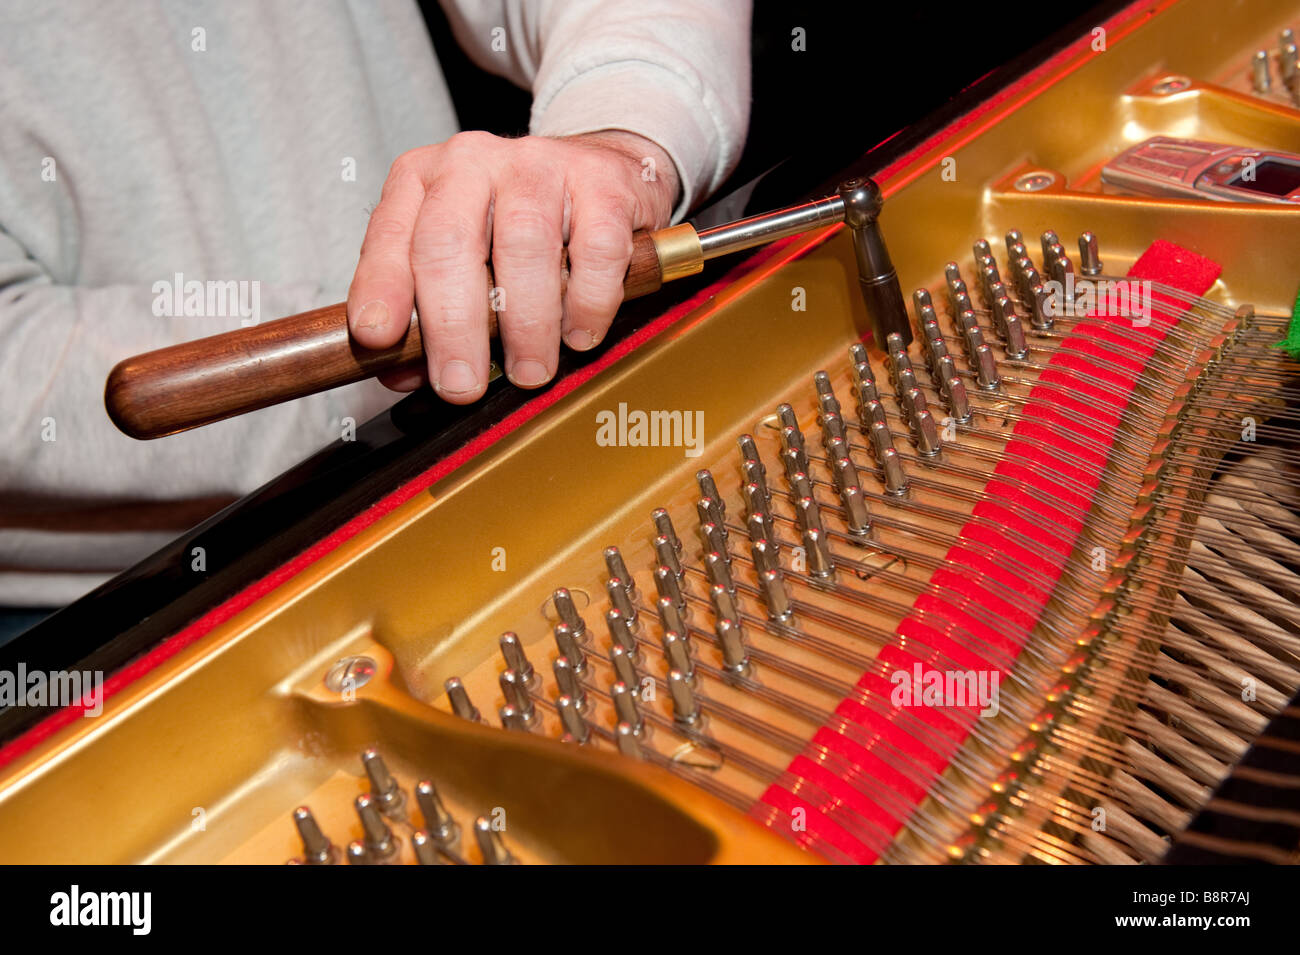 Detail of the hands of a man piano tuner tuning a grand piano before a concert, UK - Stock Image